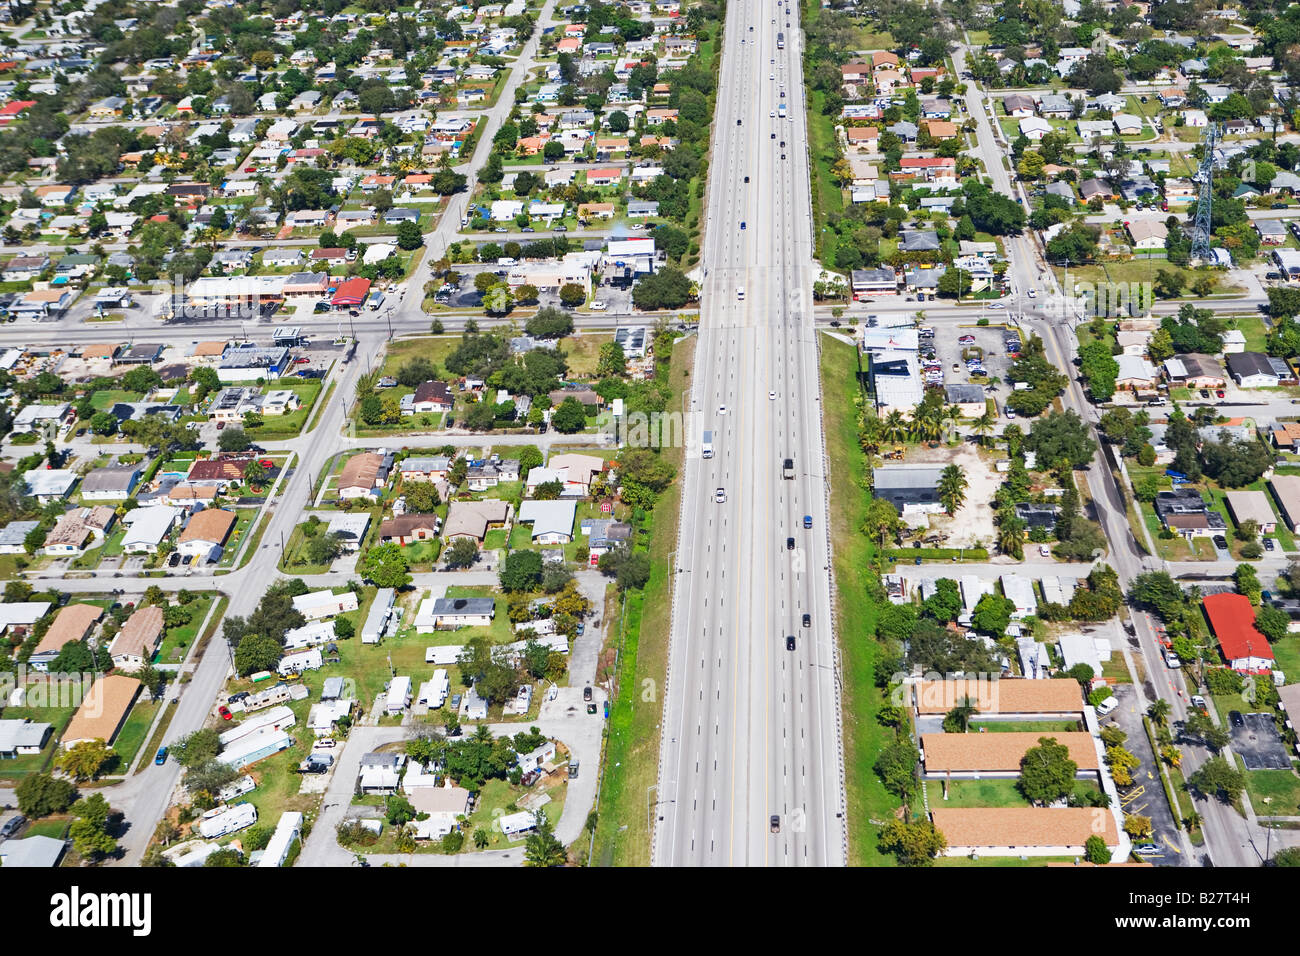 Aerial view of highway through residential area, Florida, United States - Stock Image